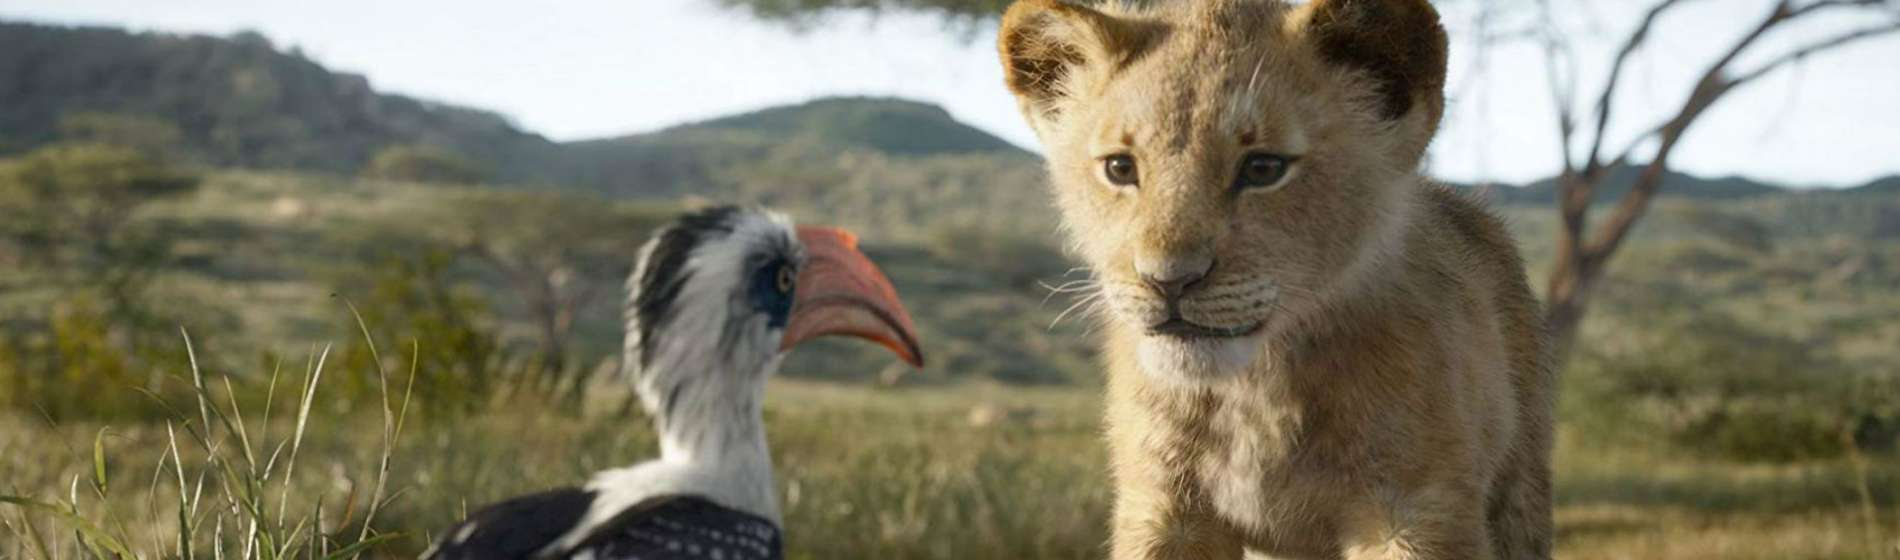 The-Lion-King-Simba-and-Zazu-Feature